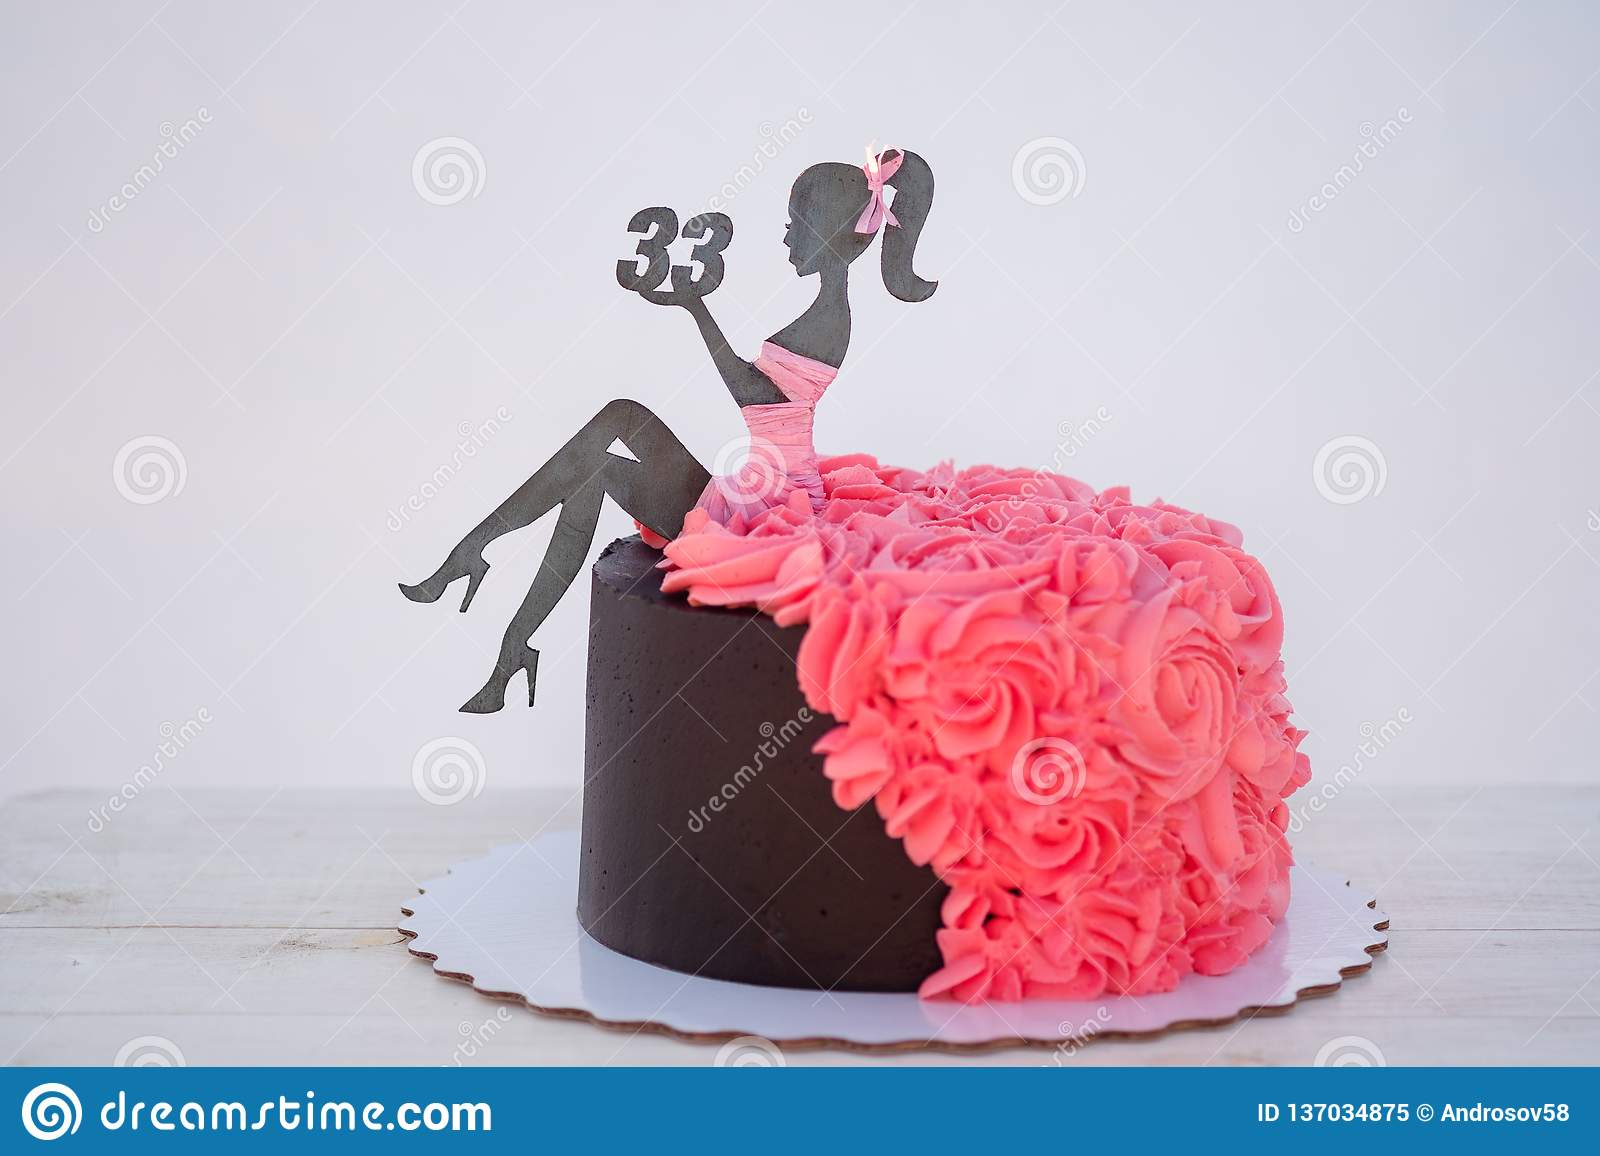 Amazing Beautiful Birthday Cake With A Figure Of A Woman And The Number Funny Birthday Cards Online Aeocydamsfinfo